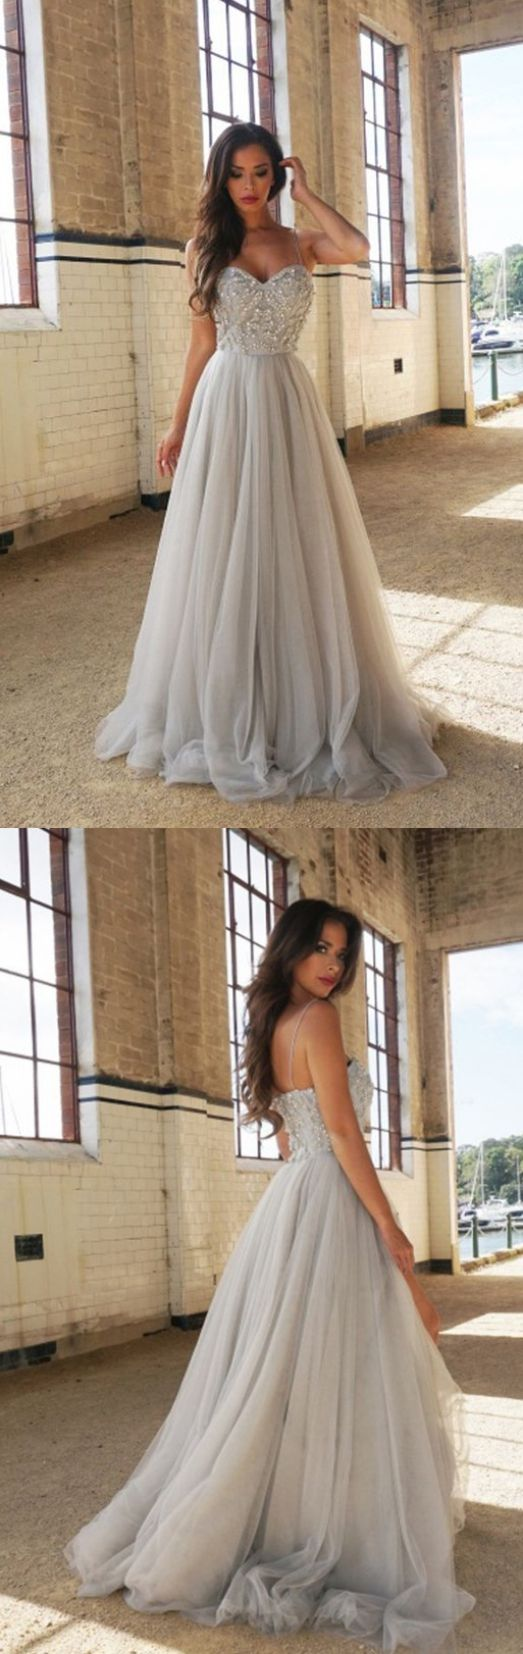 Princess Wedding Dresses Grey AlinePrincess Wedding Dresses